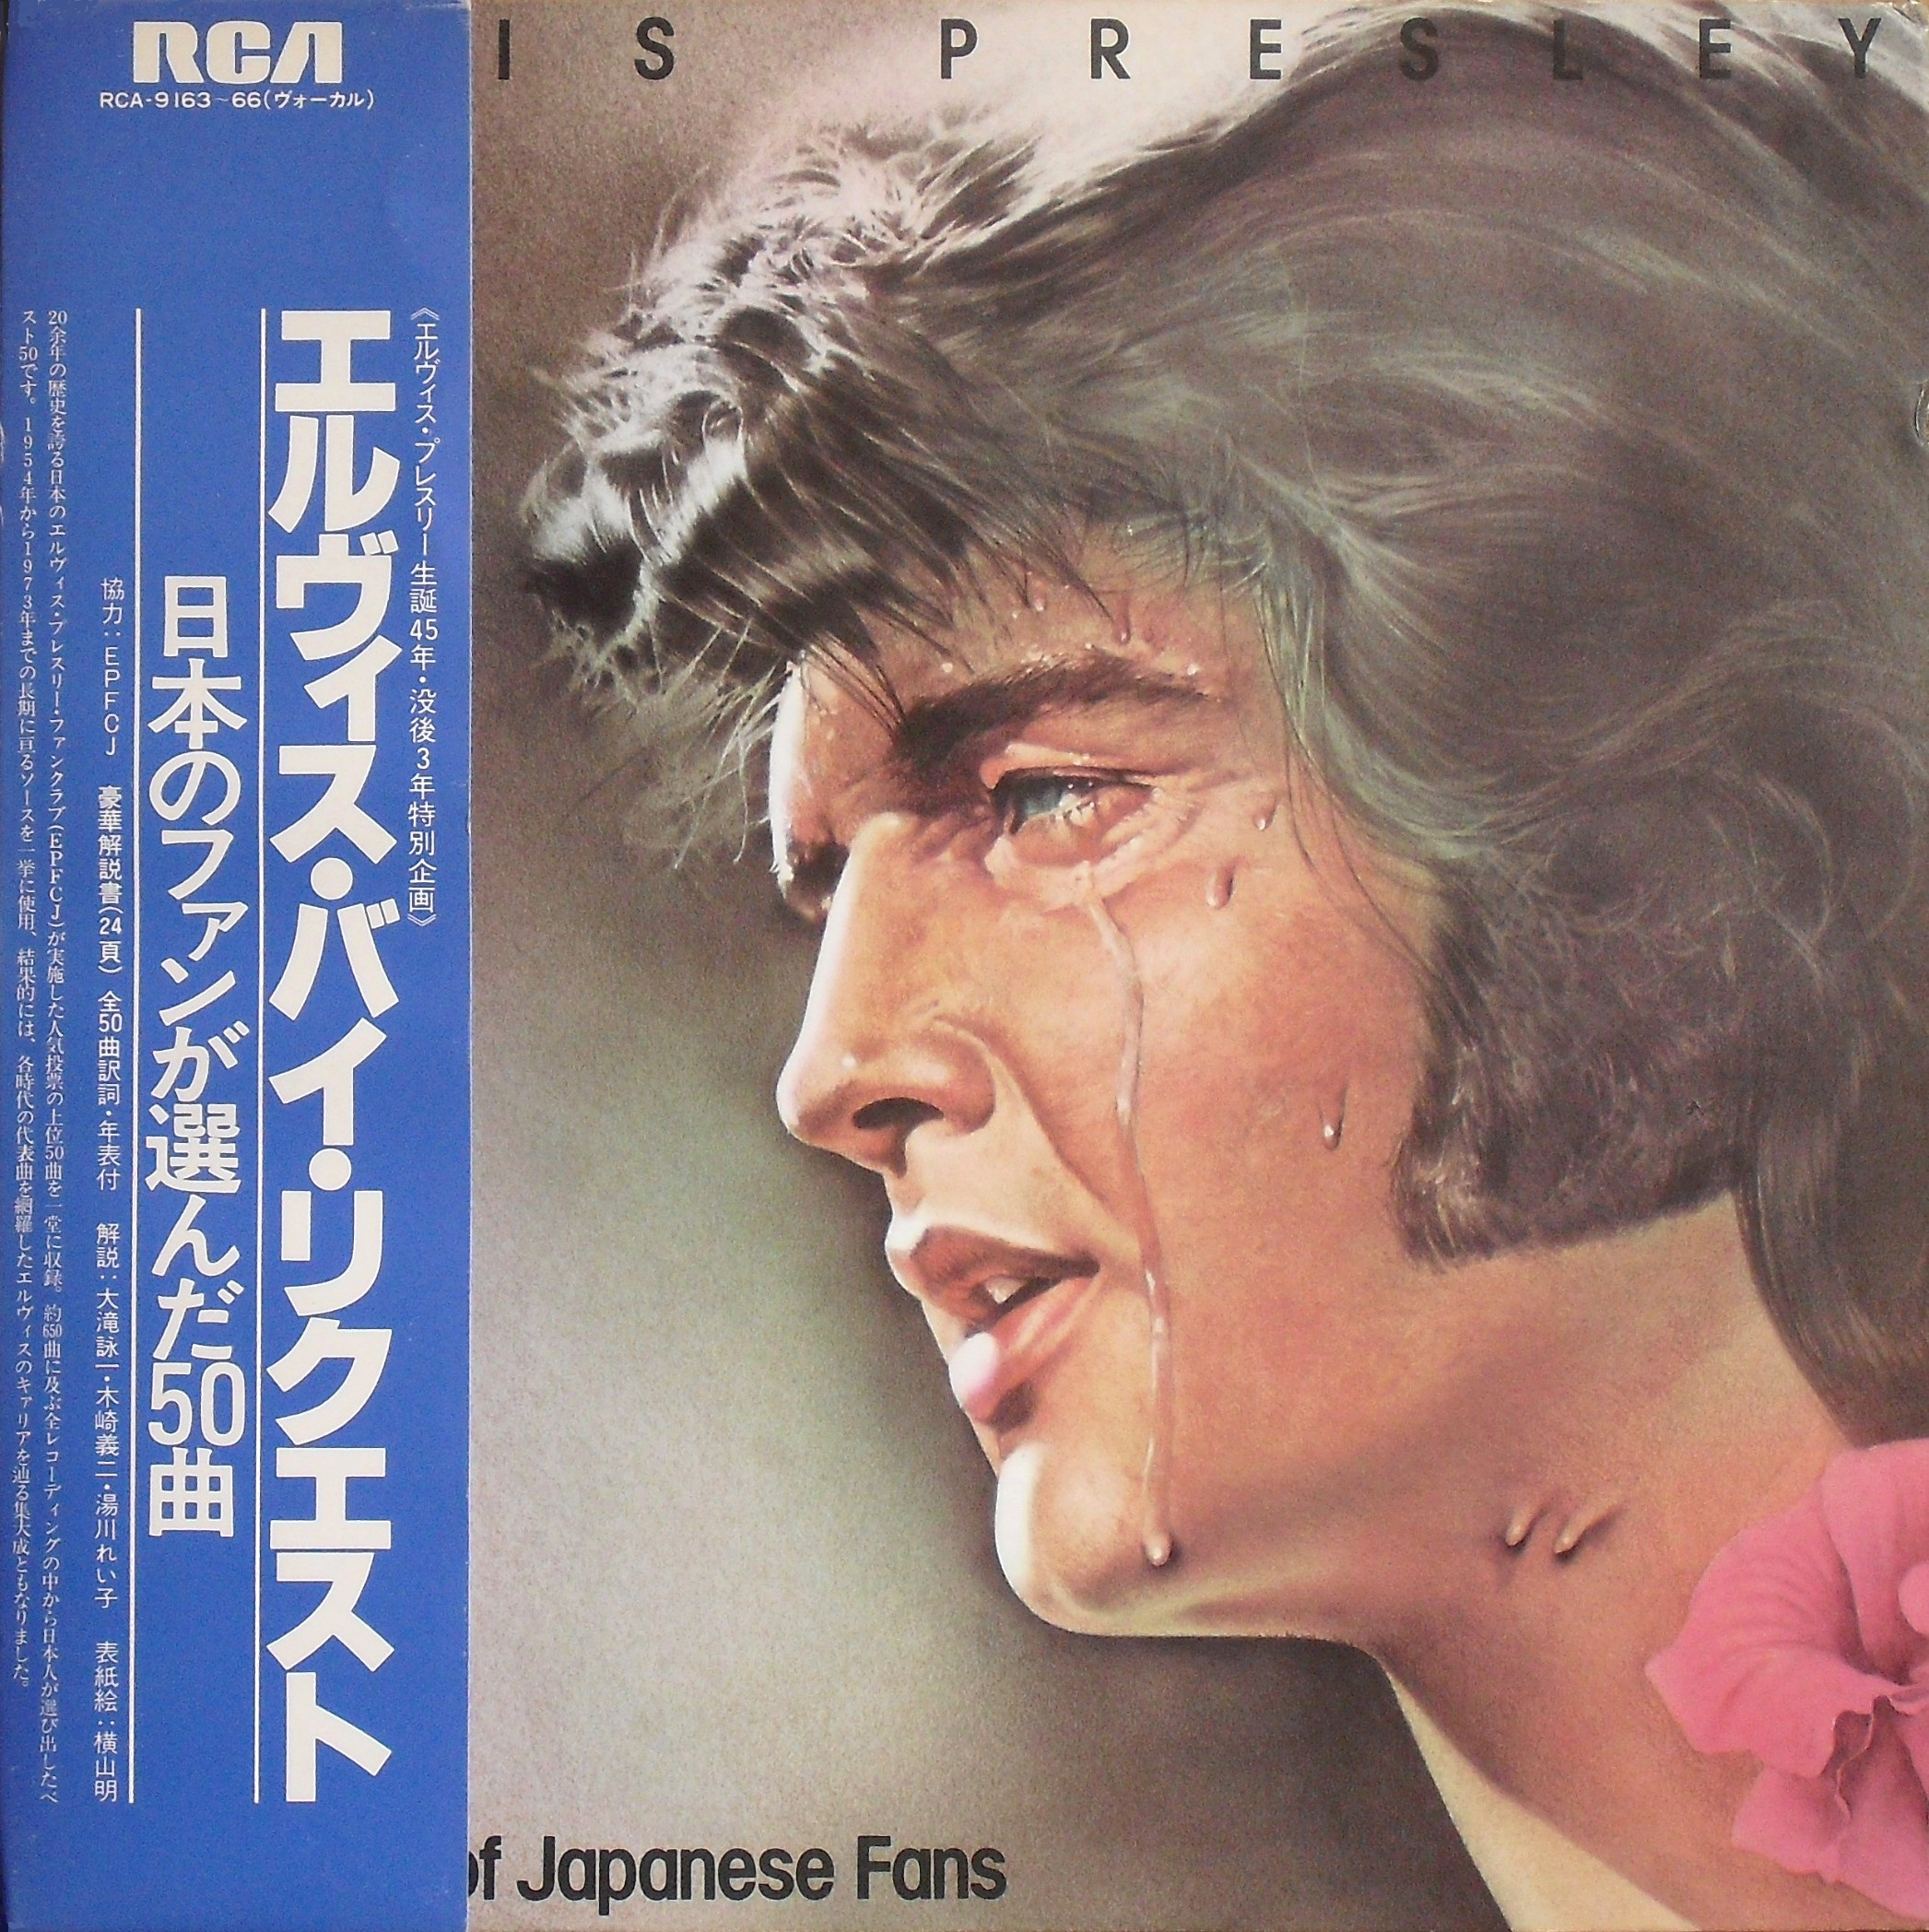 ELVIS BY REQUEST OF JAPANESE FANS 001pix3w